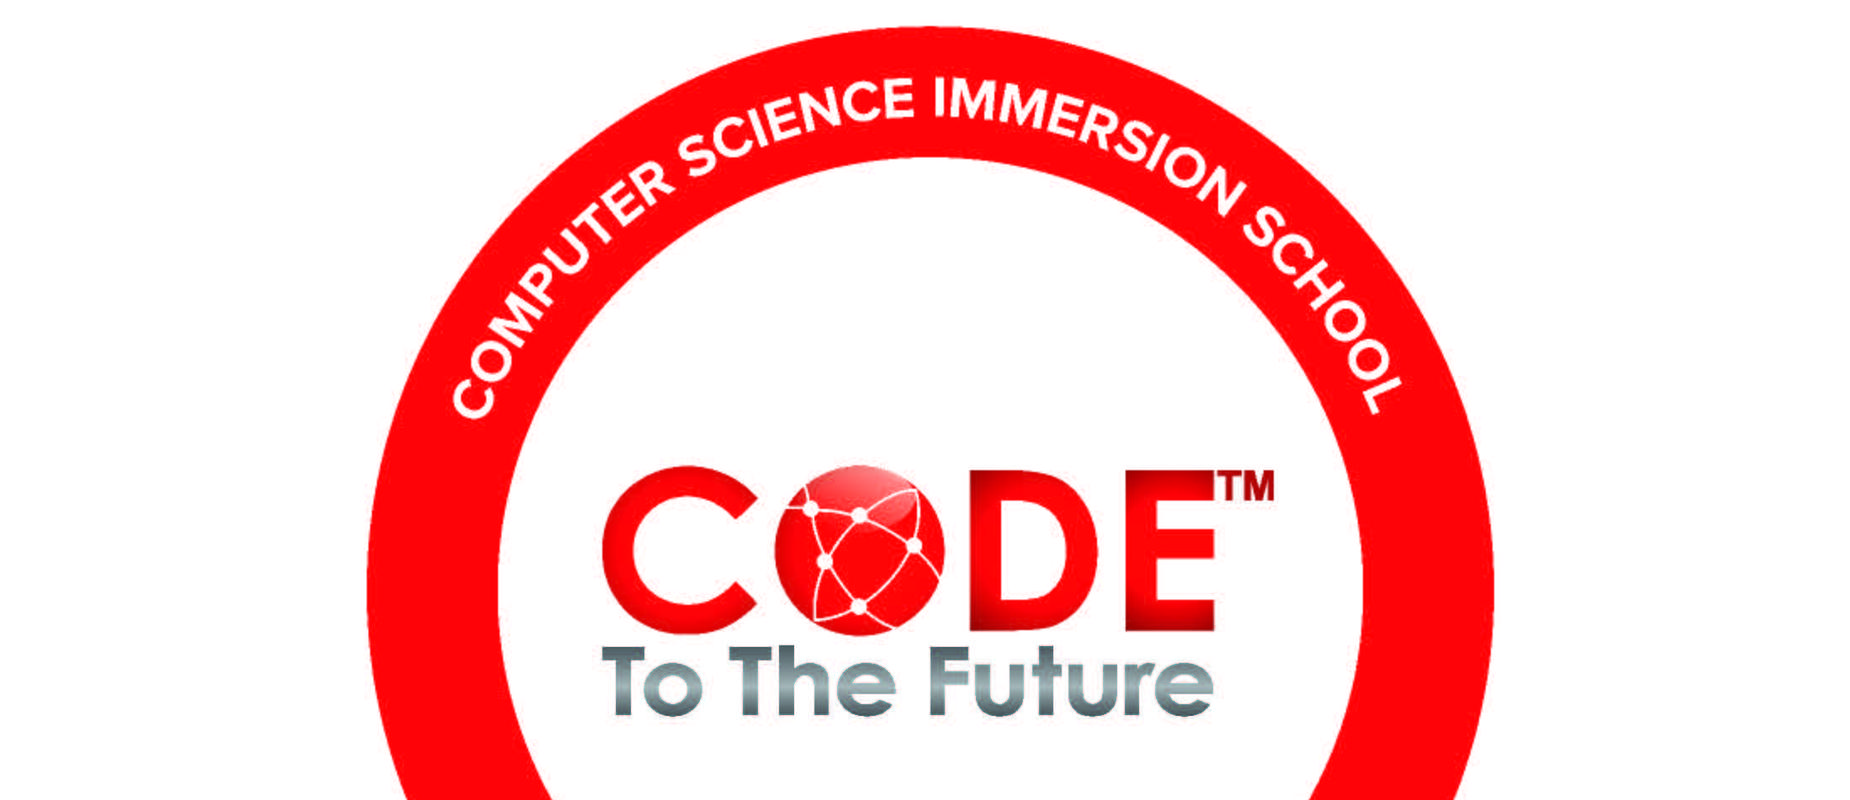 Code to the Future Computer Science Immersion School